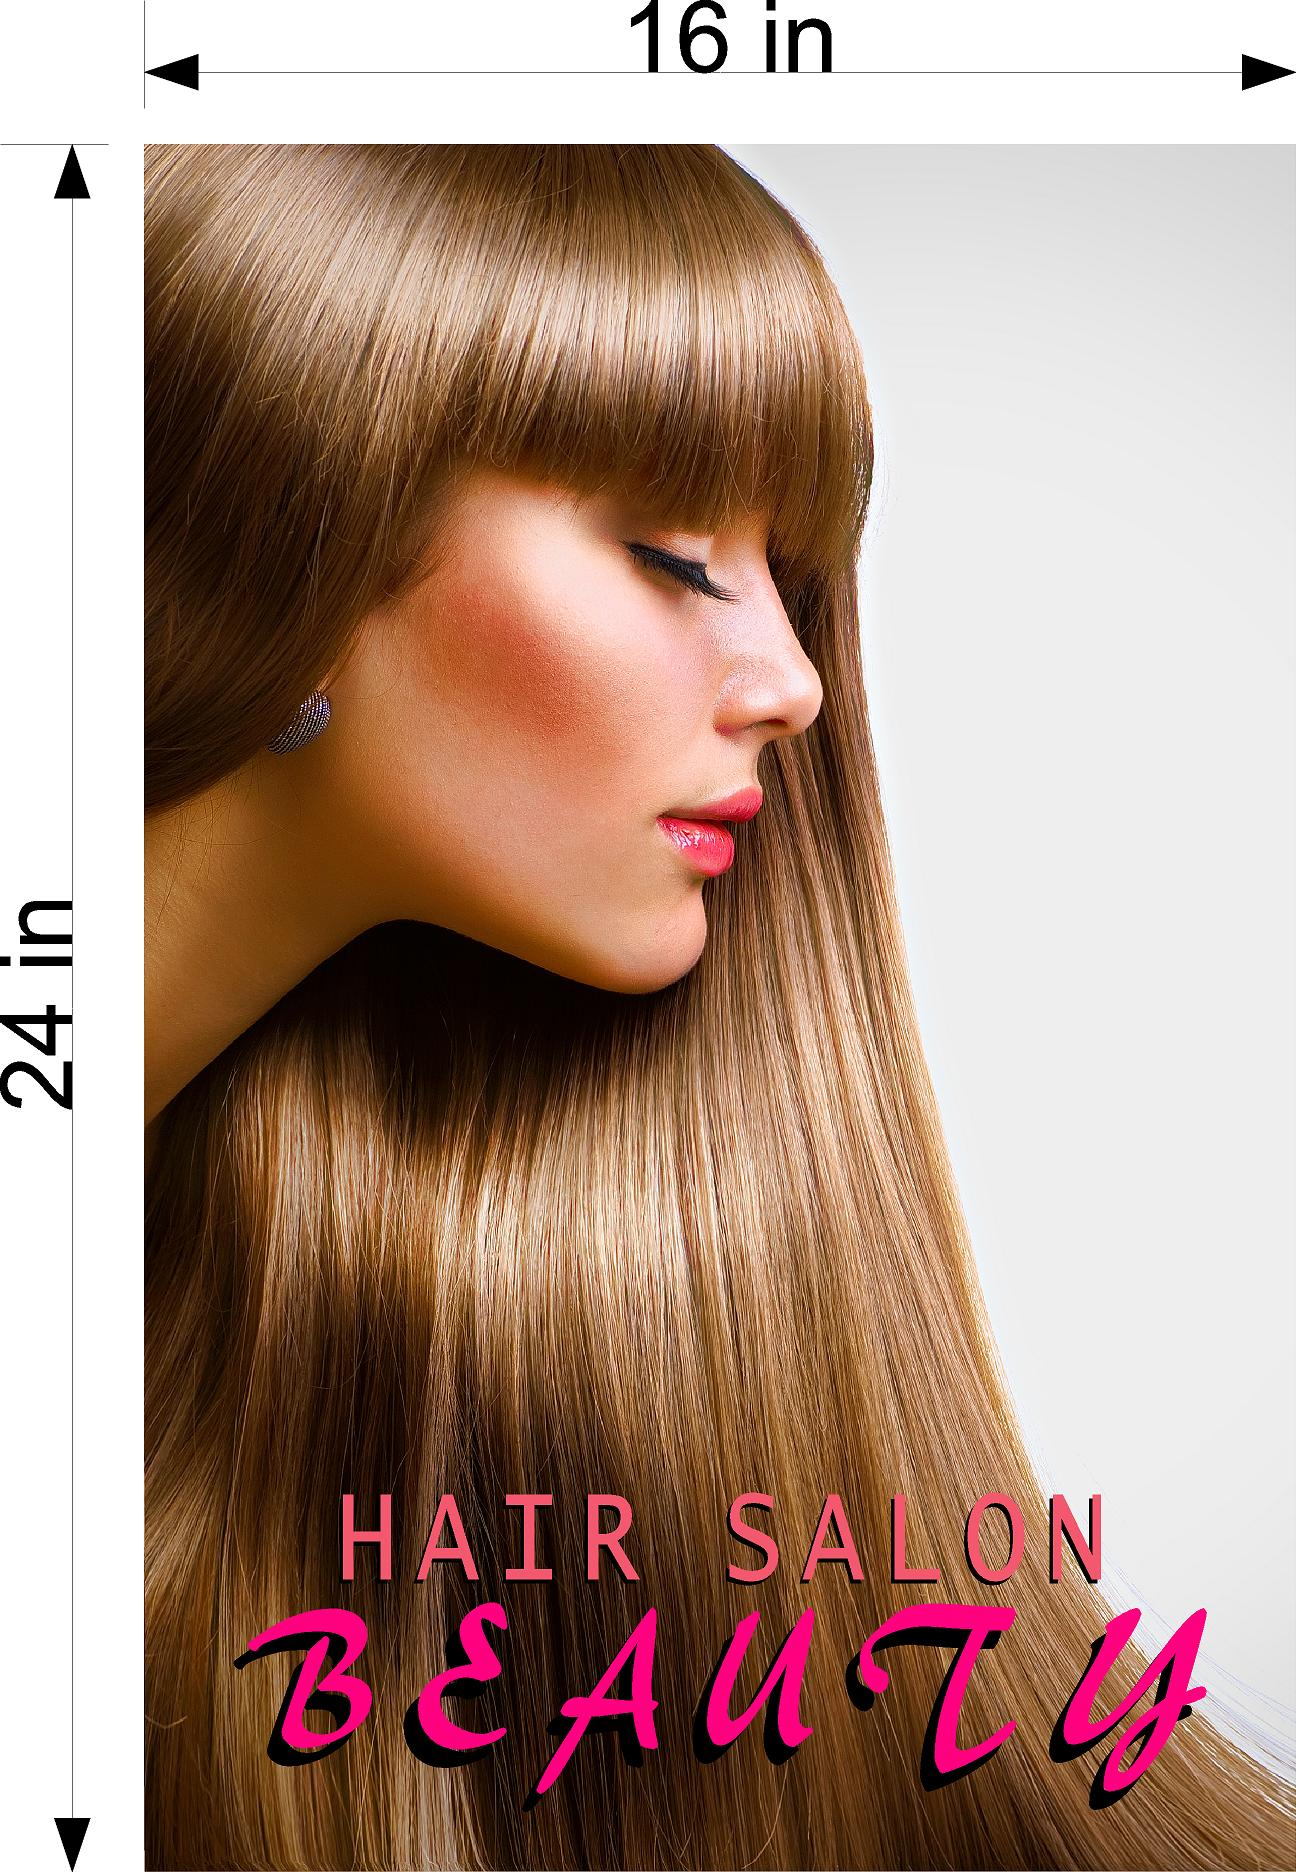 Hair Salon 01 Photo-Realistic Paper Poster Matte Interior Inside Sign Non-Laminated Vertical